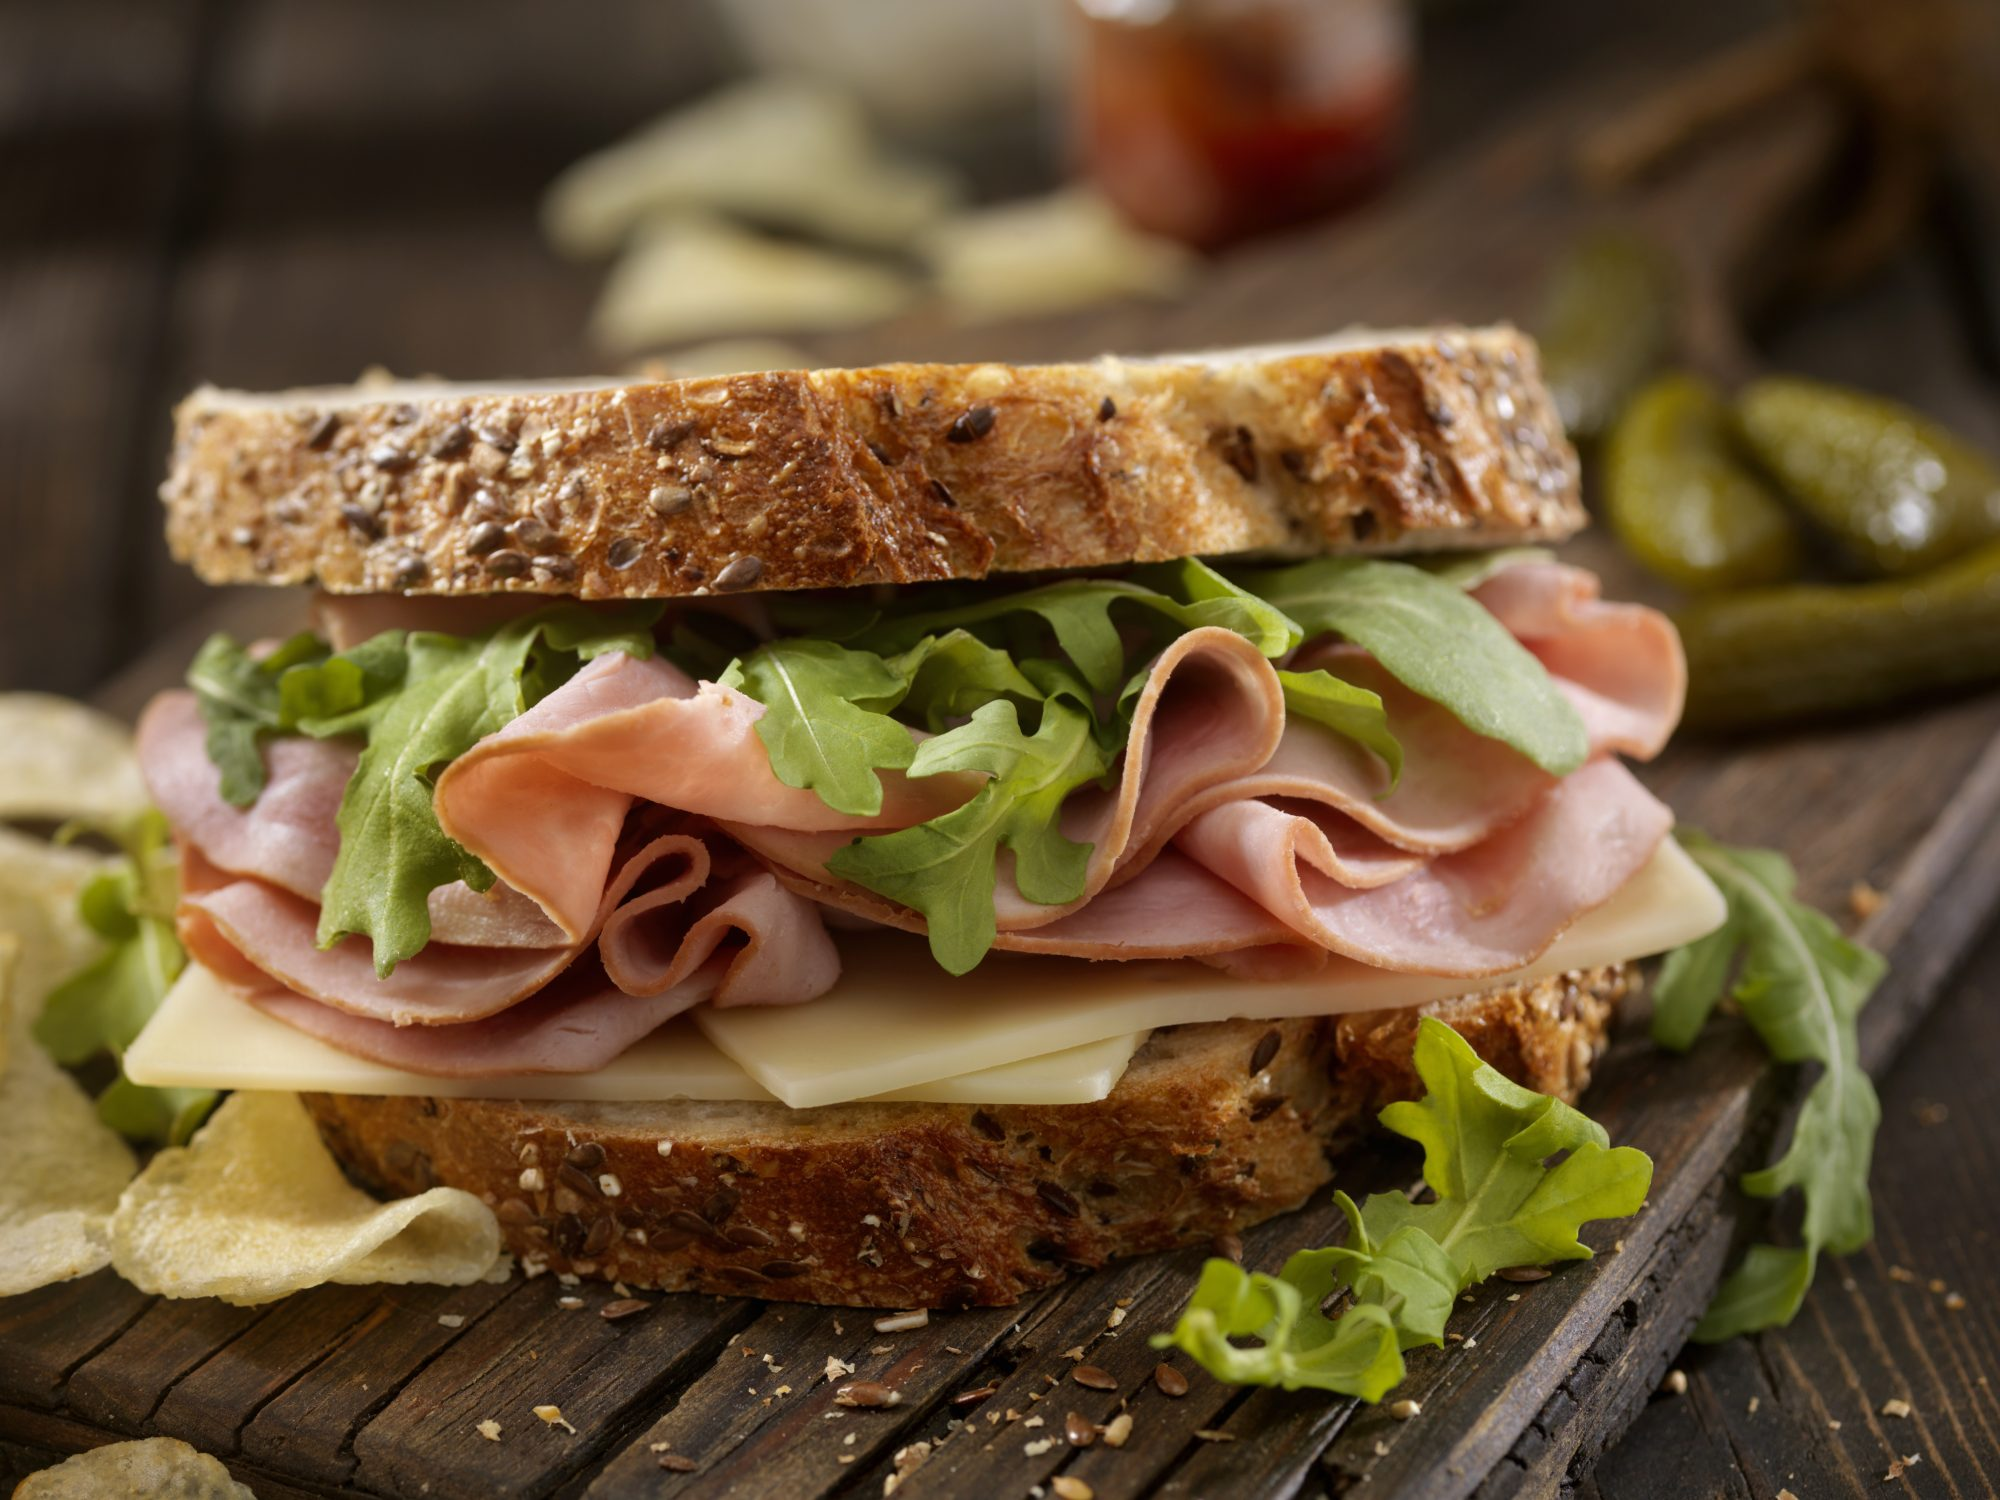 The Art of the Southern Kitchen-Sink Sandwich